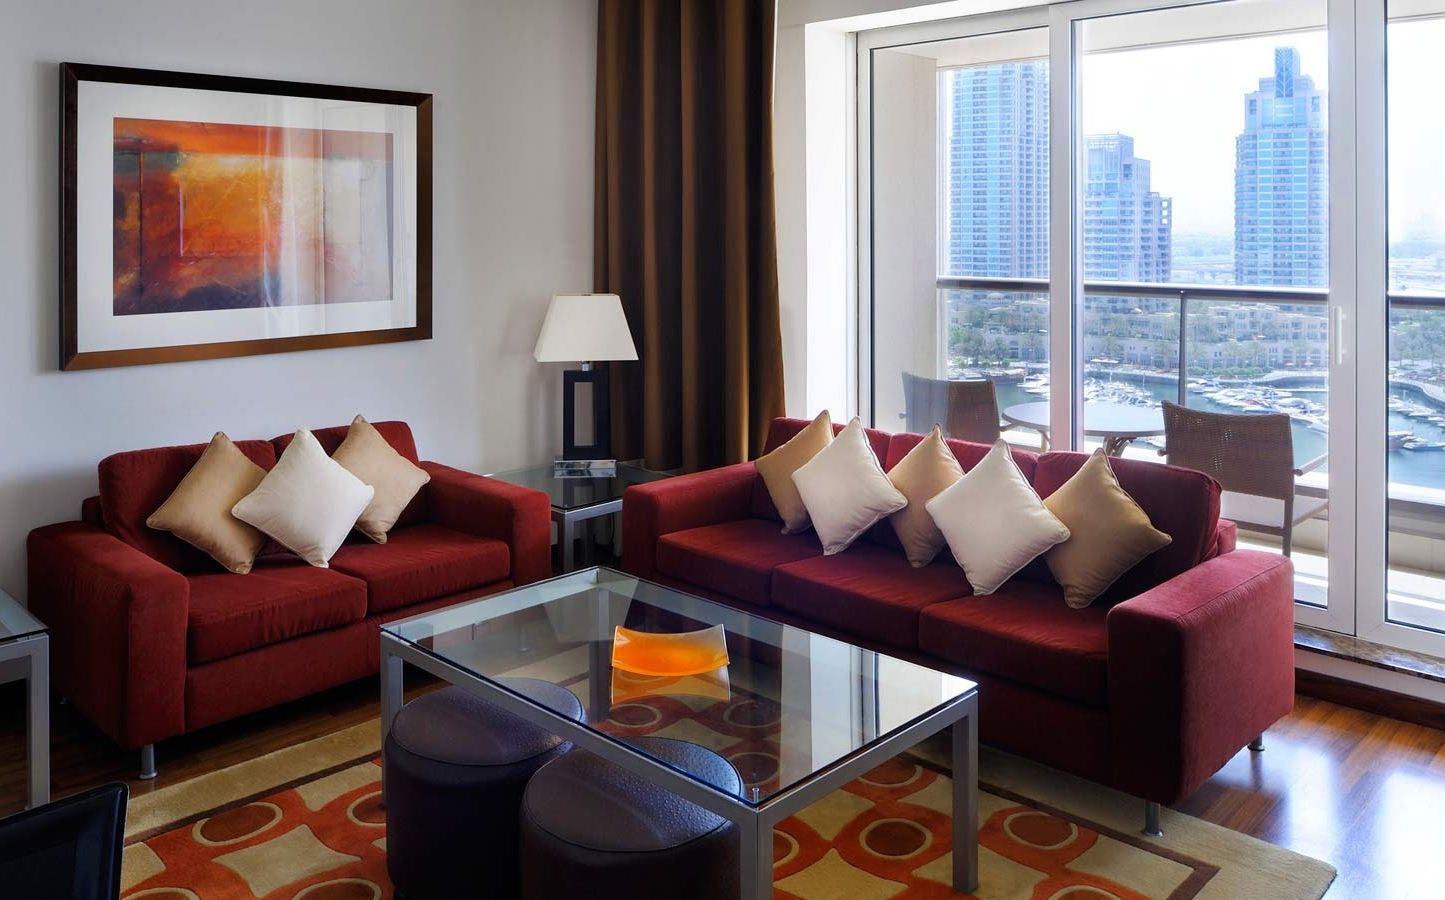 Two Bed Apartments grosvenor house dubai | 2 bedroom furnished, serviced apartments